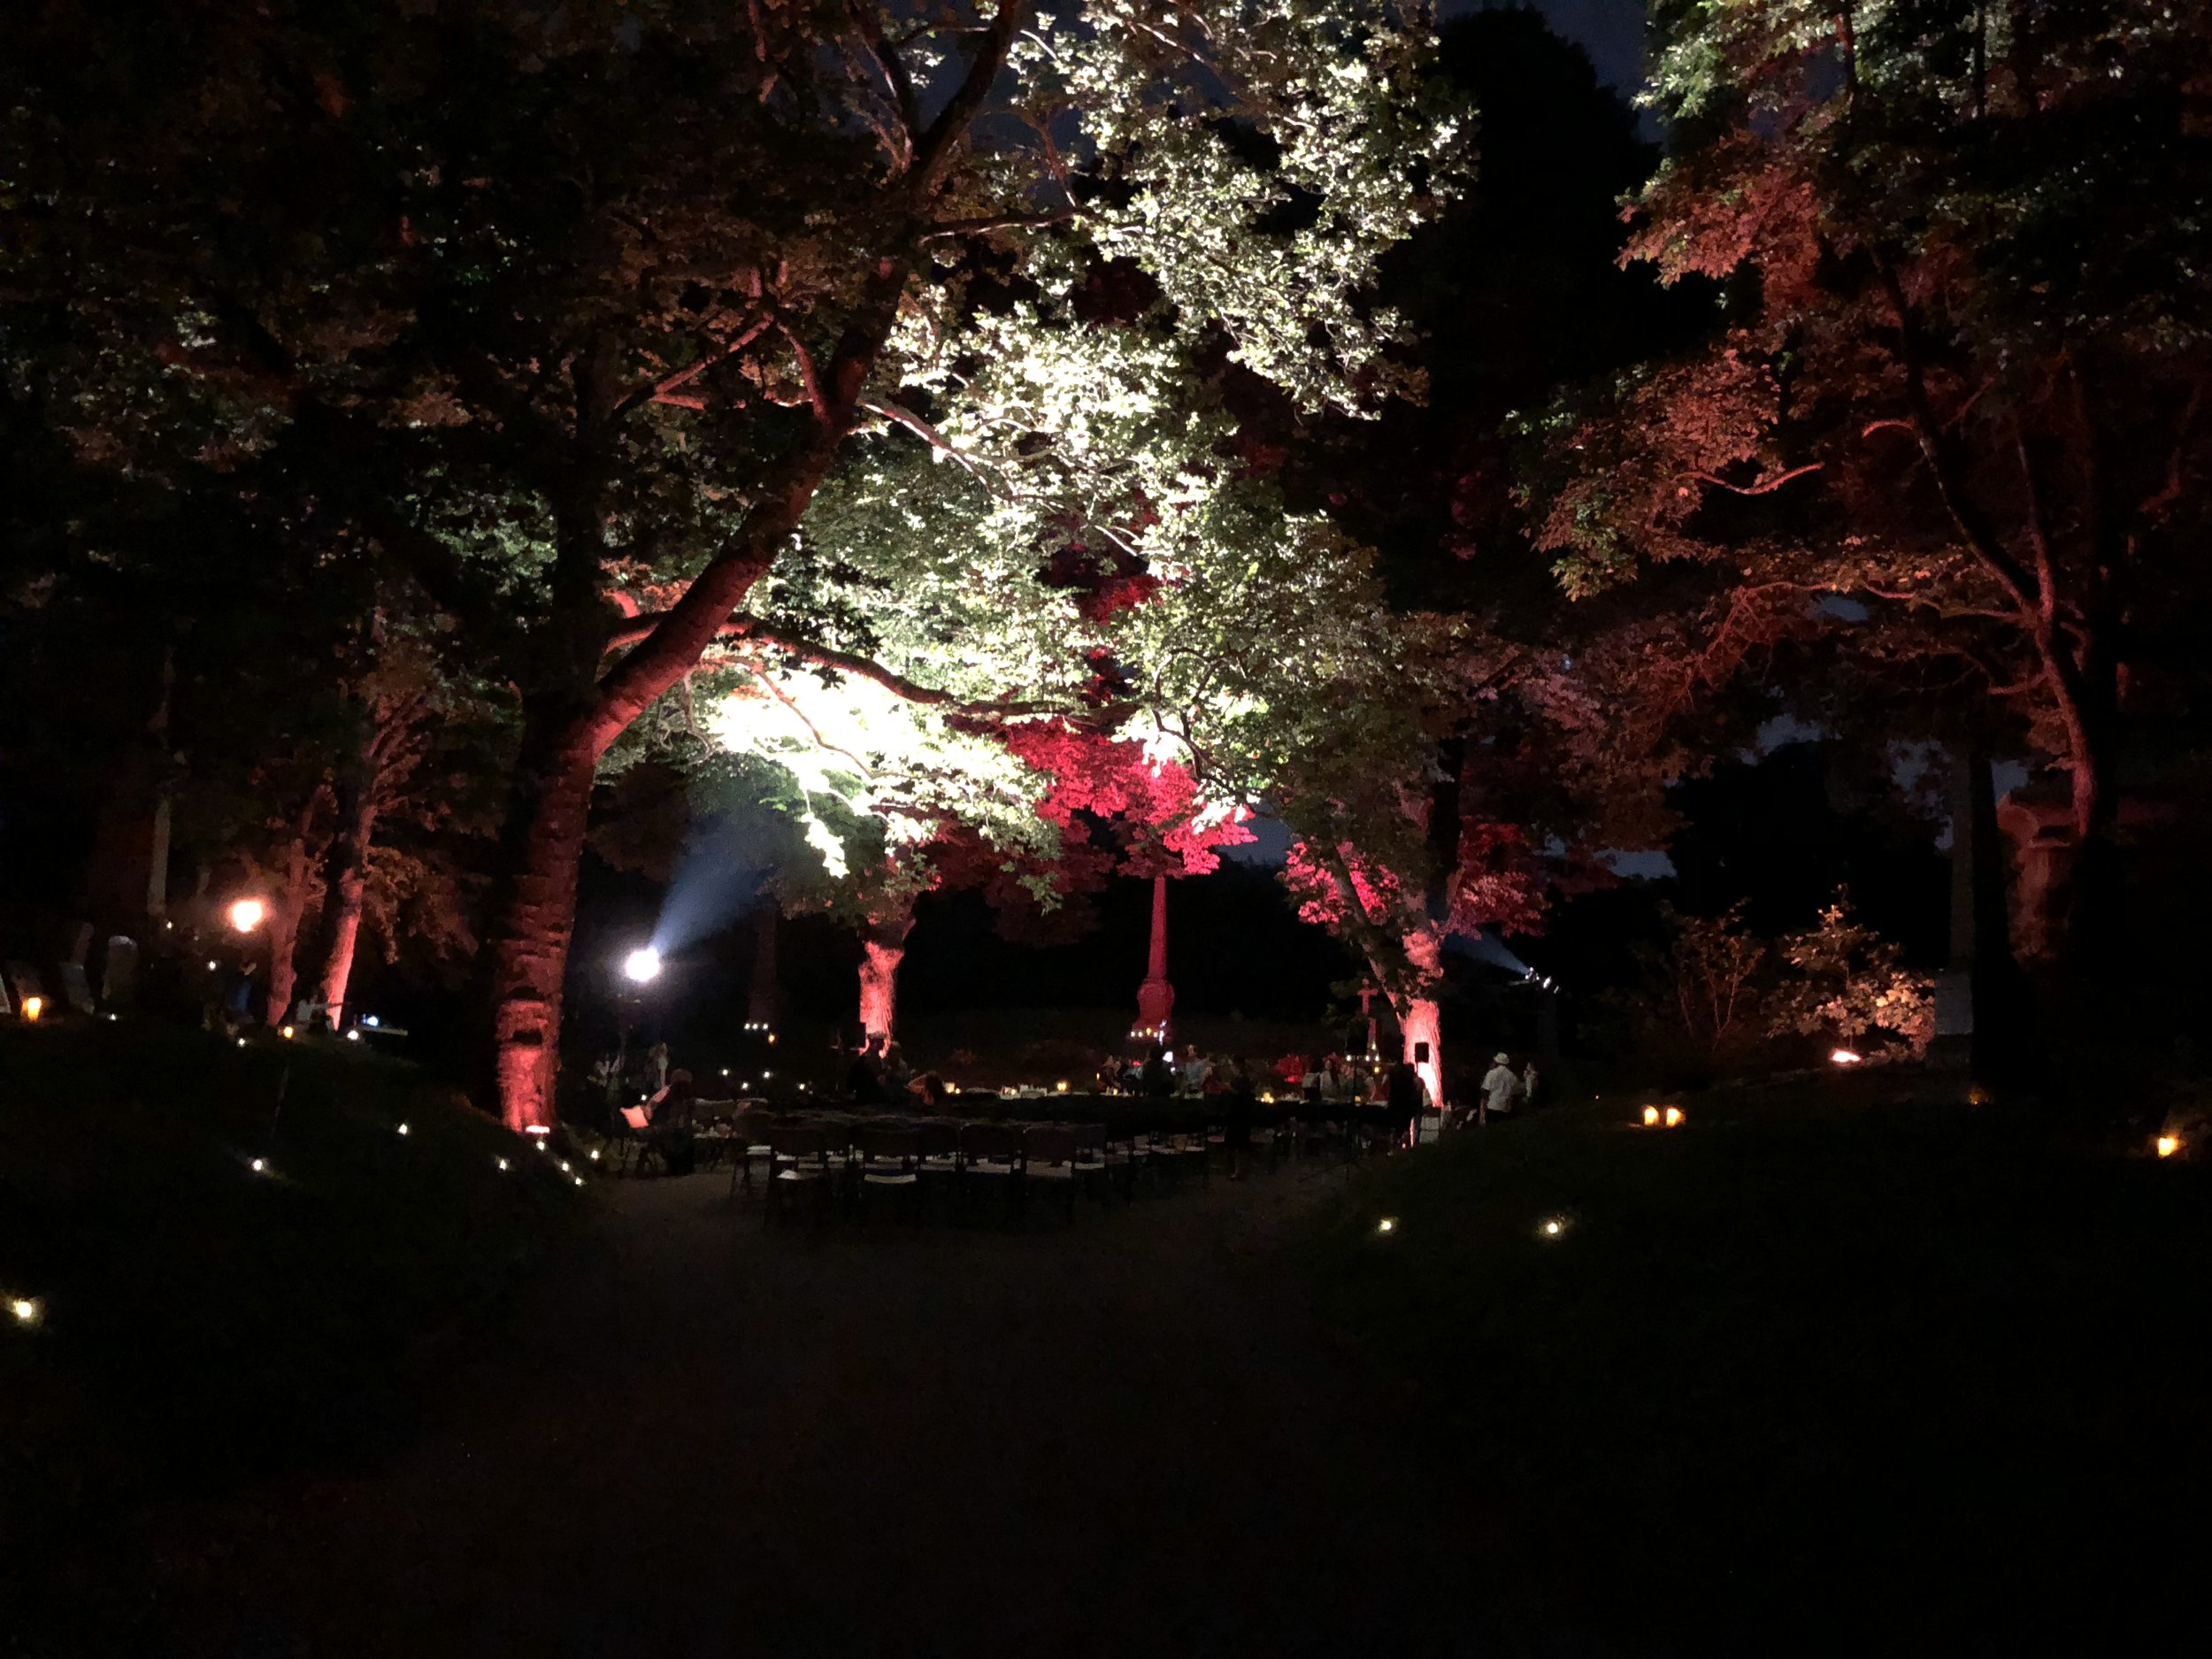 Creating atmosphere with lighting in tree canopies